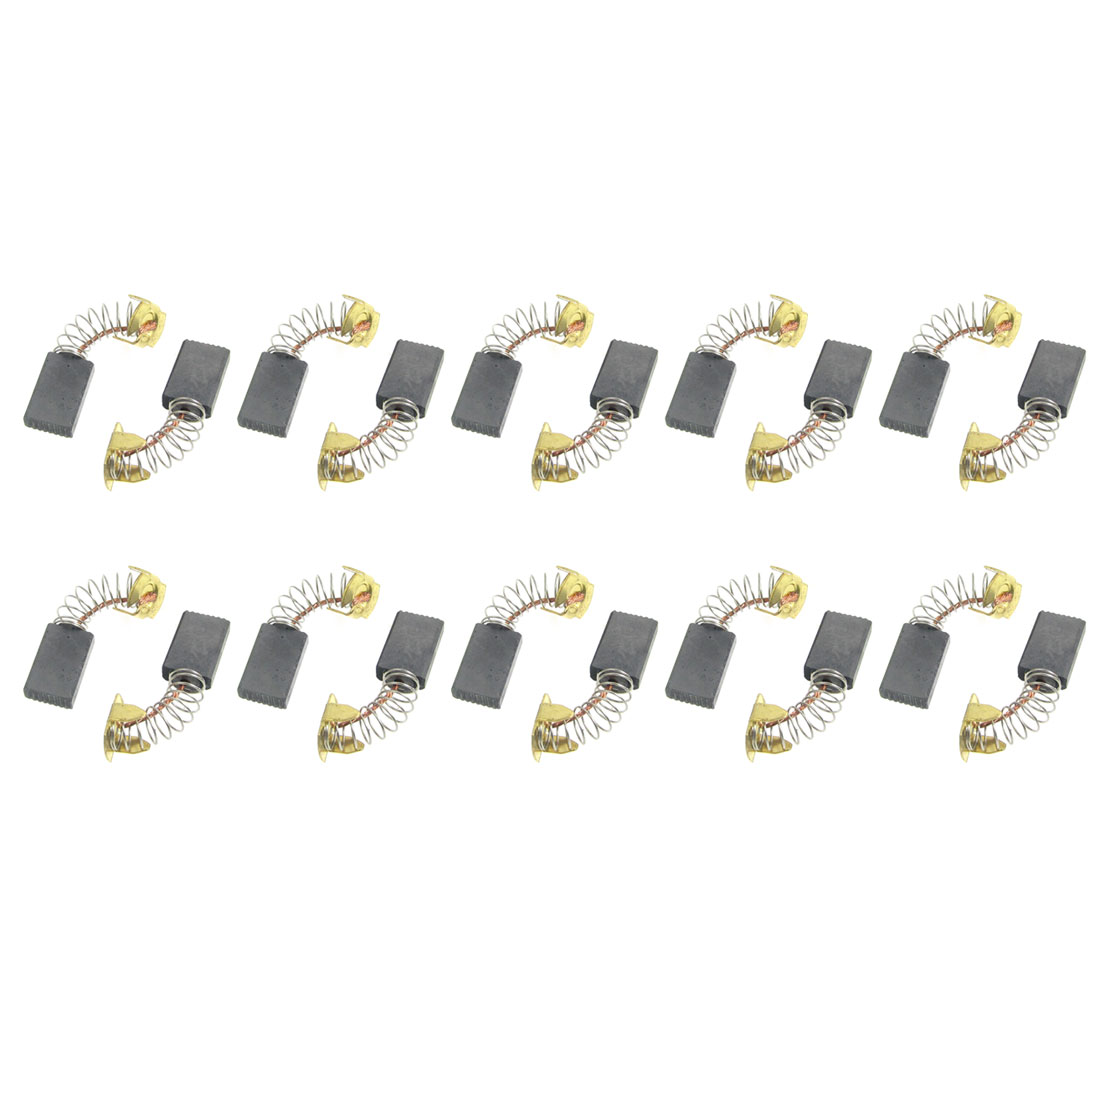 "10 Pcs Spring Type Electric Drill Motor Carbon Brushes 43/64"" x 13/32"" x 5/32"""